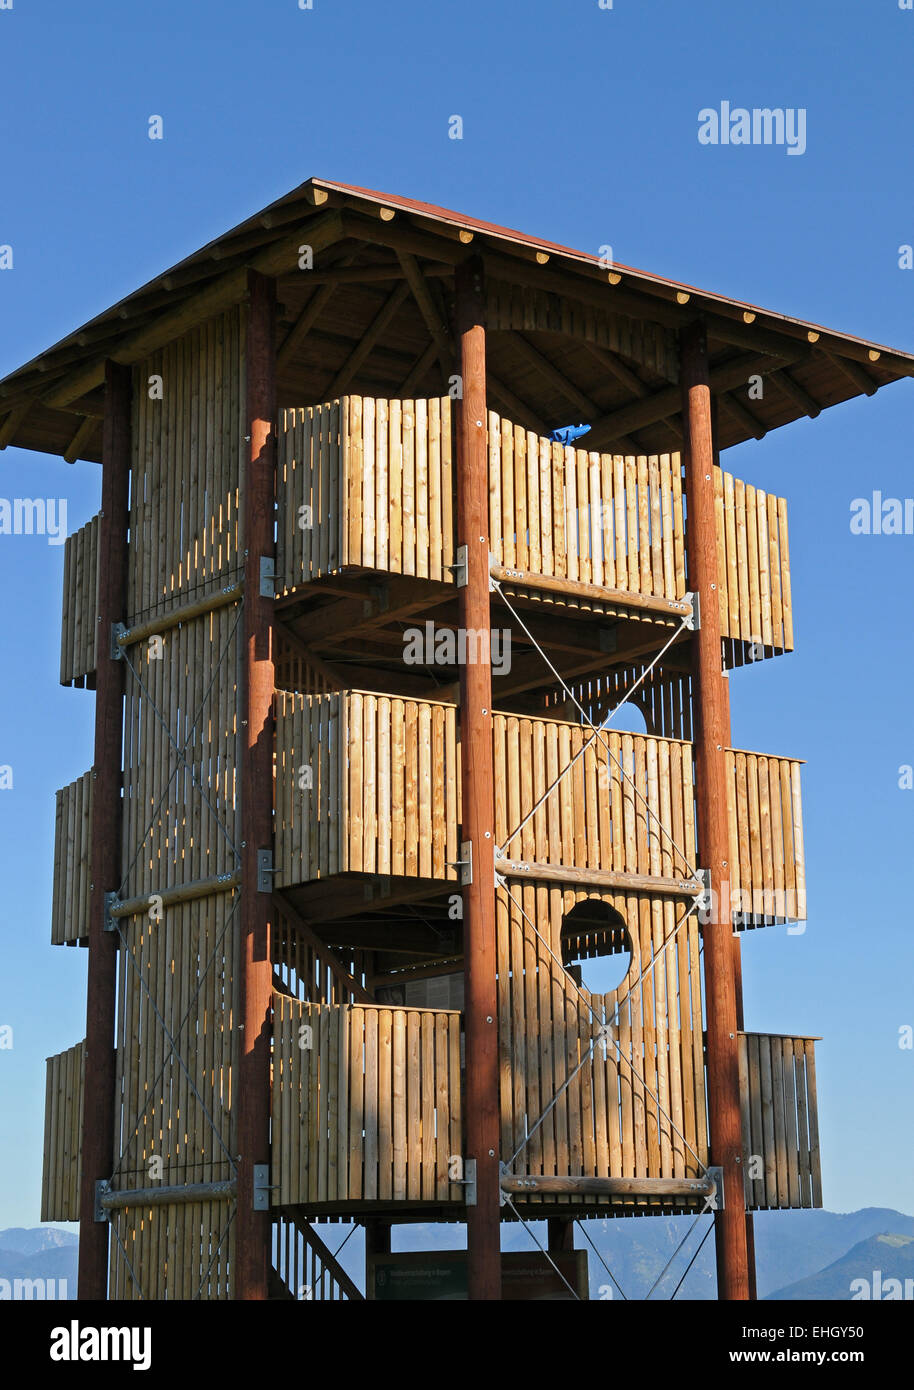 Aussichtsturm / Lookout tower - Stock Image